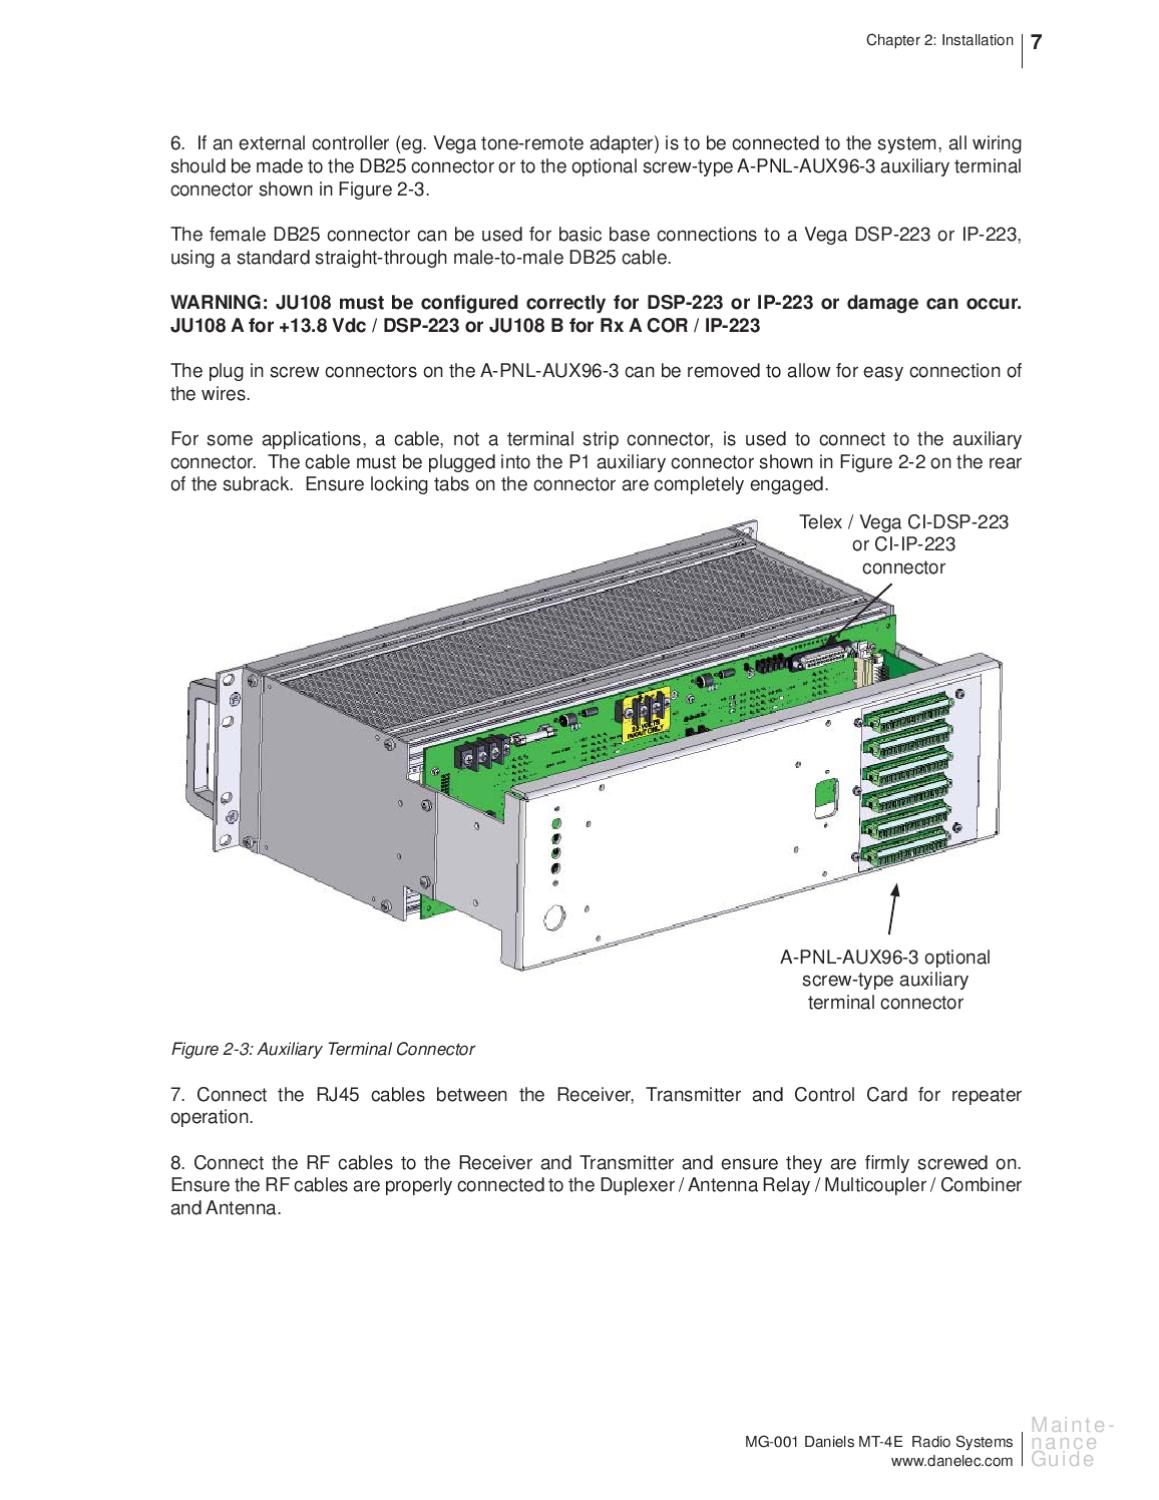 Mt 4e Analog And P25 Digital Radio Systems Maintenance Guide By Pete Straight Through Cable Wiring Scheme Lunness Issuu